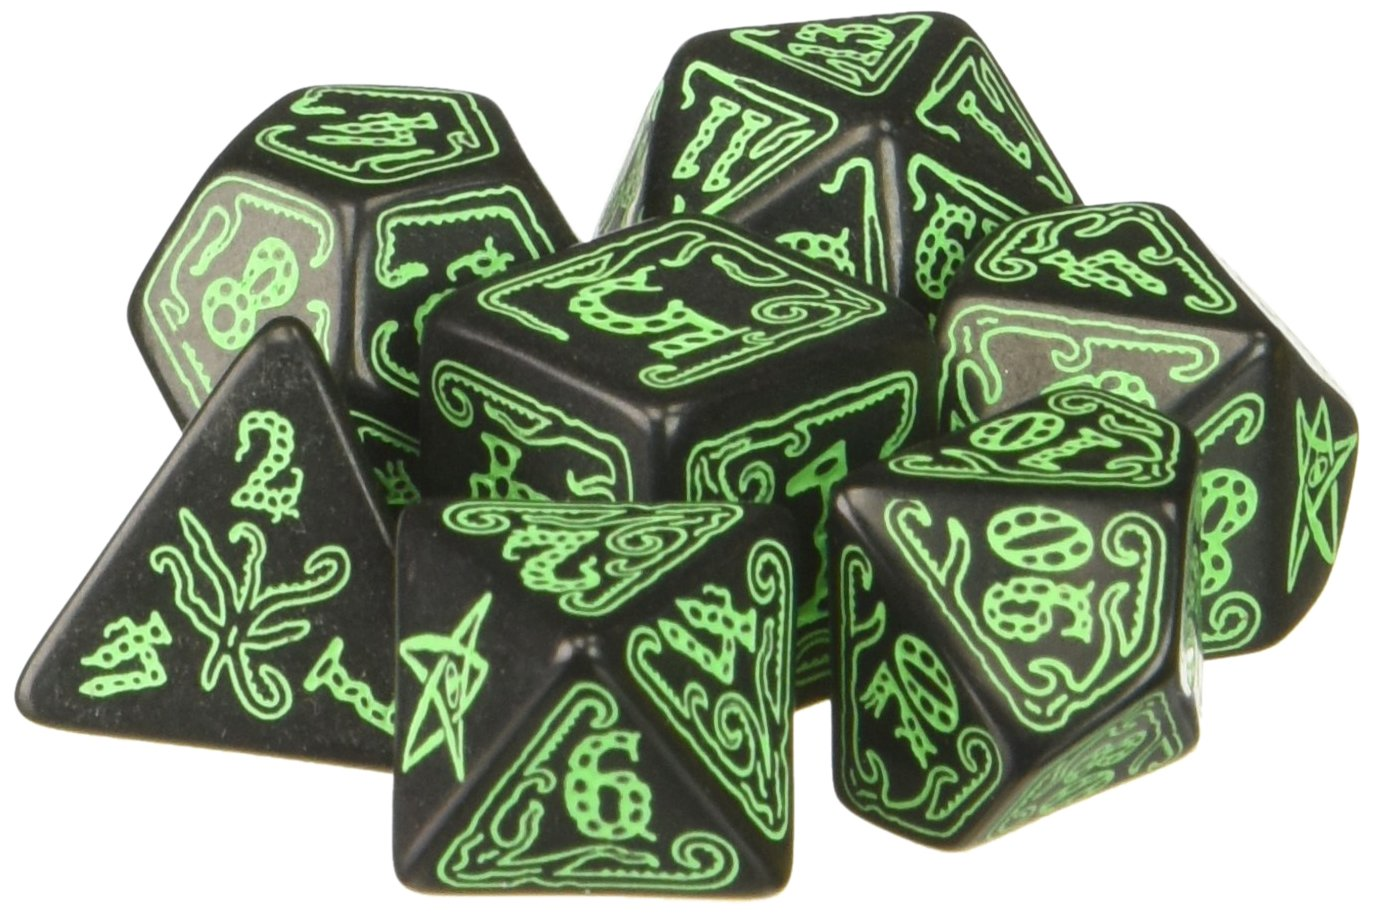 Q Workshop Call of Cthulhu: Black and Green Dice, Set of 7